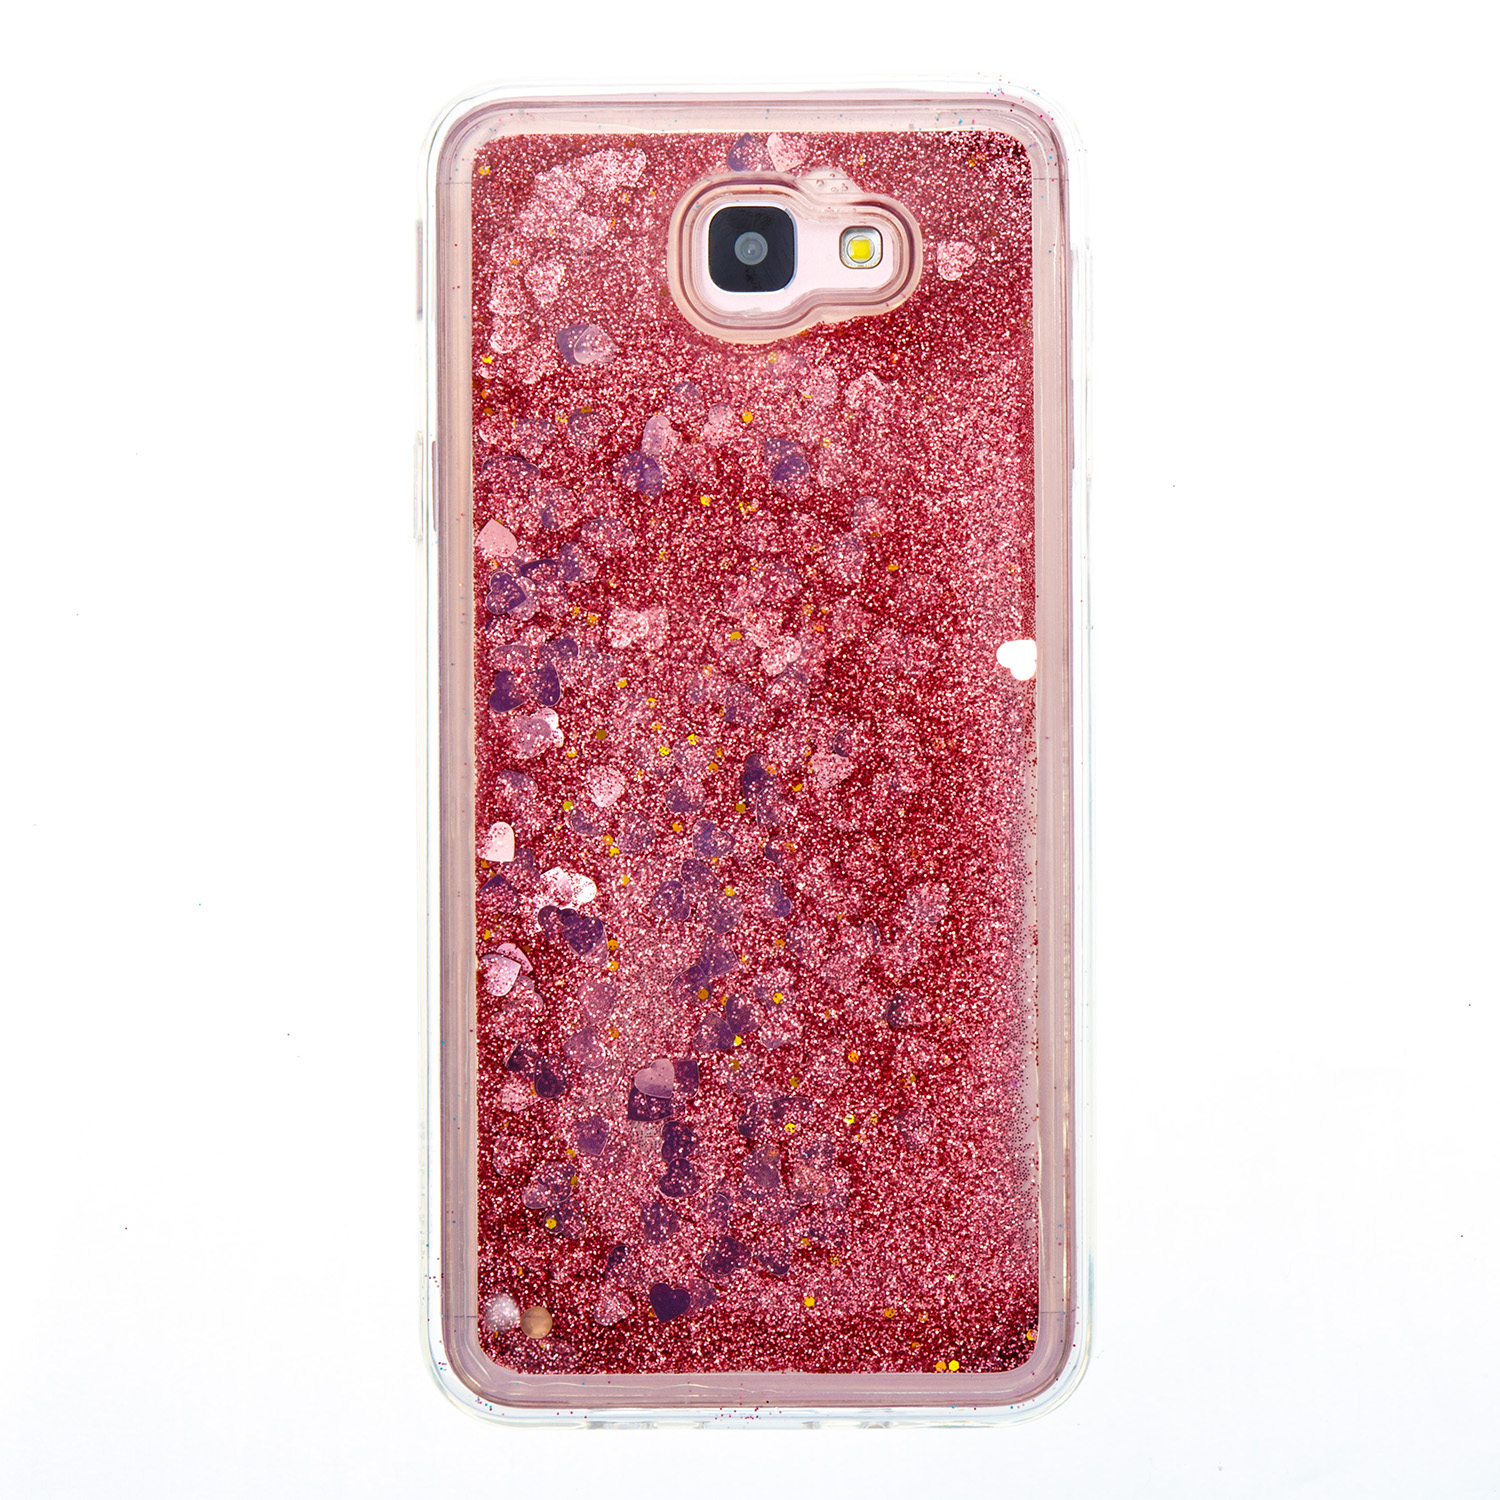 Cellphones & Telecommunications Half-wrapped Case Glitter Bling Quicksand Water Sand Soft Tpu Protecive Back Case Cover For Samsung Galaxy J7 Prime Liquid Case Capa Coque Fundas